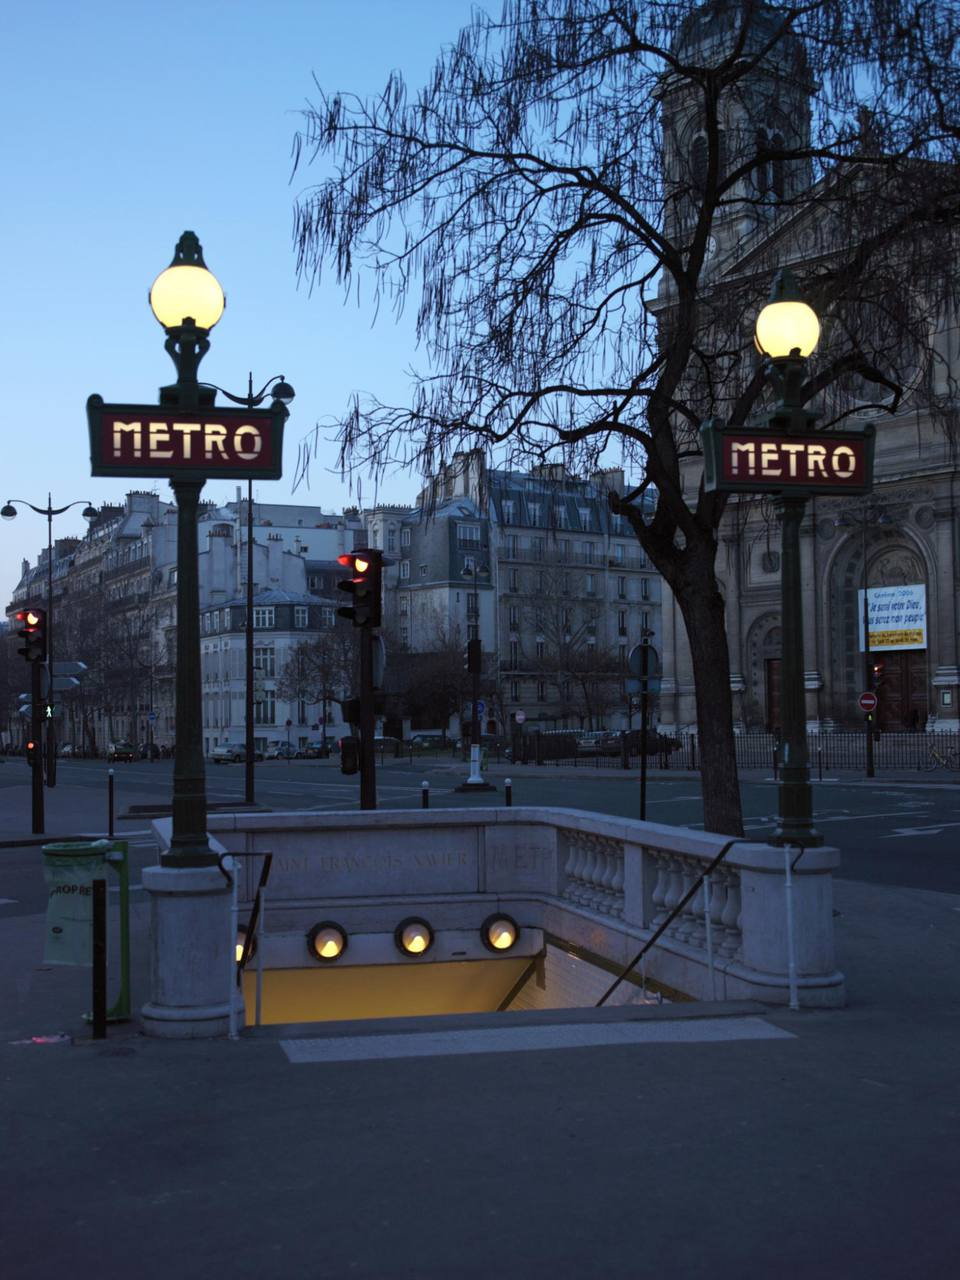 Learning a few basic expressions can help you navigate the Paris metro more smoothly.